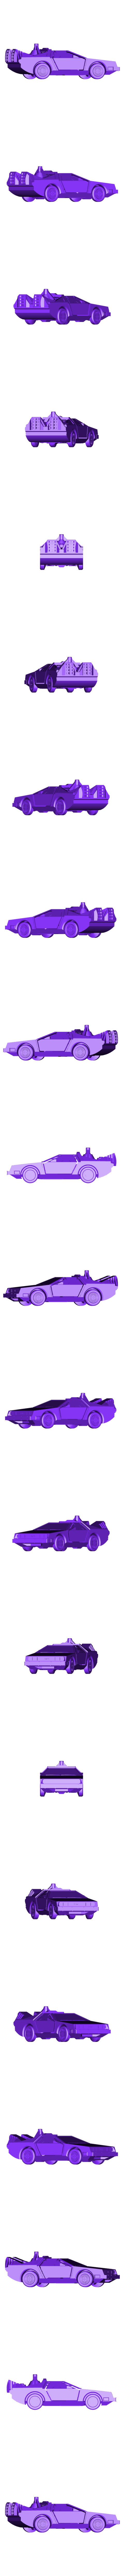 Delorean_Final.stl Download STL file DeLorean DMC-12 (Back to the Future) PRINT-IN-PLACE • Template to 3D print, Atomicosstudio